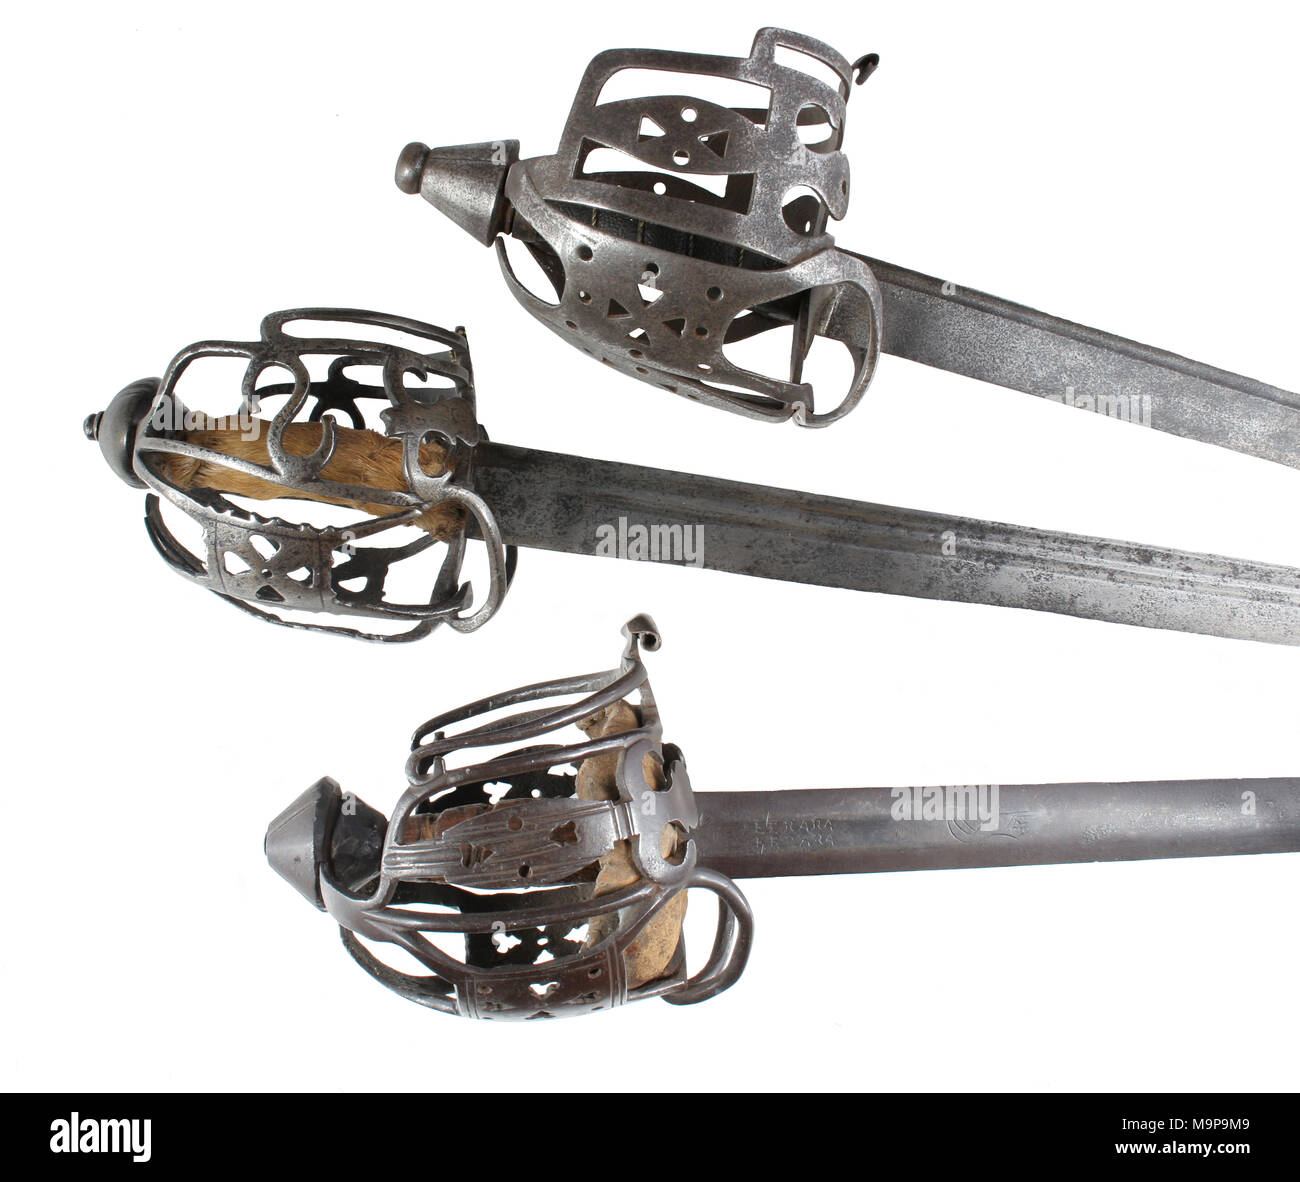 Three Steel  basket hilts of 18th Century Scottish Highland broadswords of the types used in the American Revolution - Stock Image